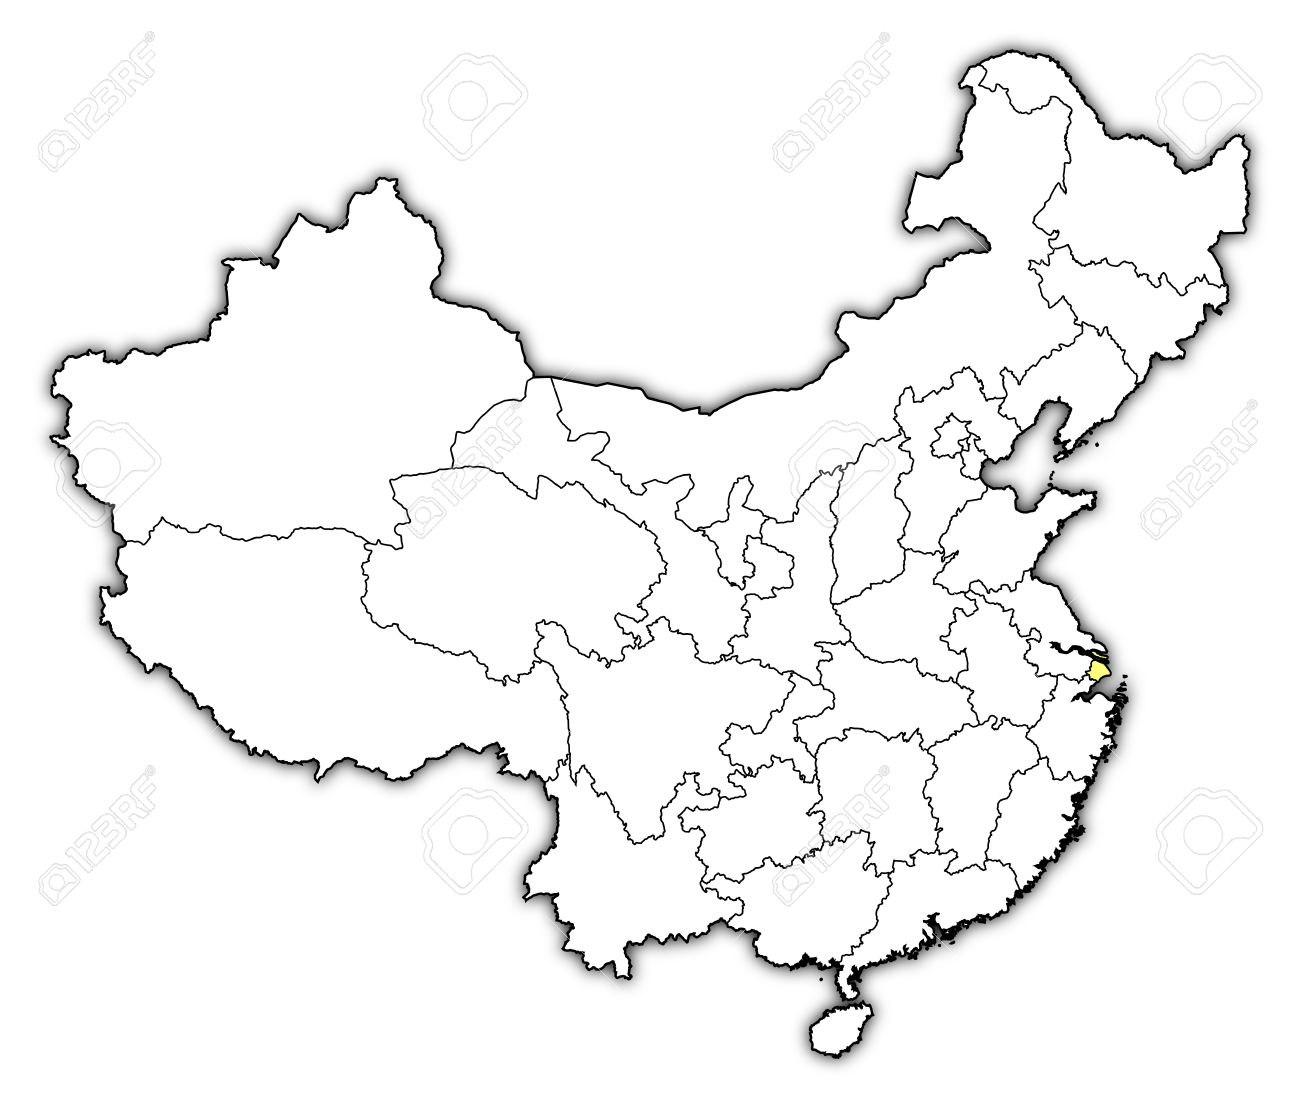 Political Map Of China With The Several Provinces Where Shanghai